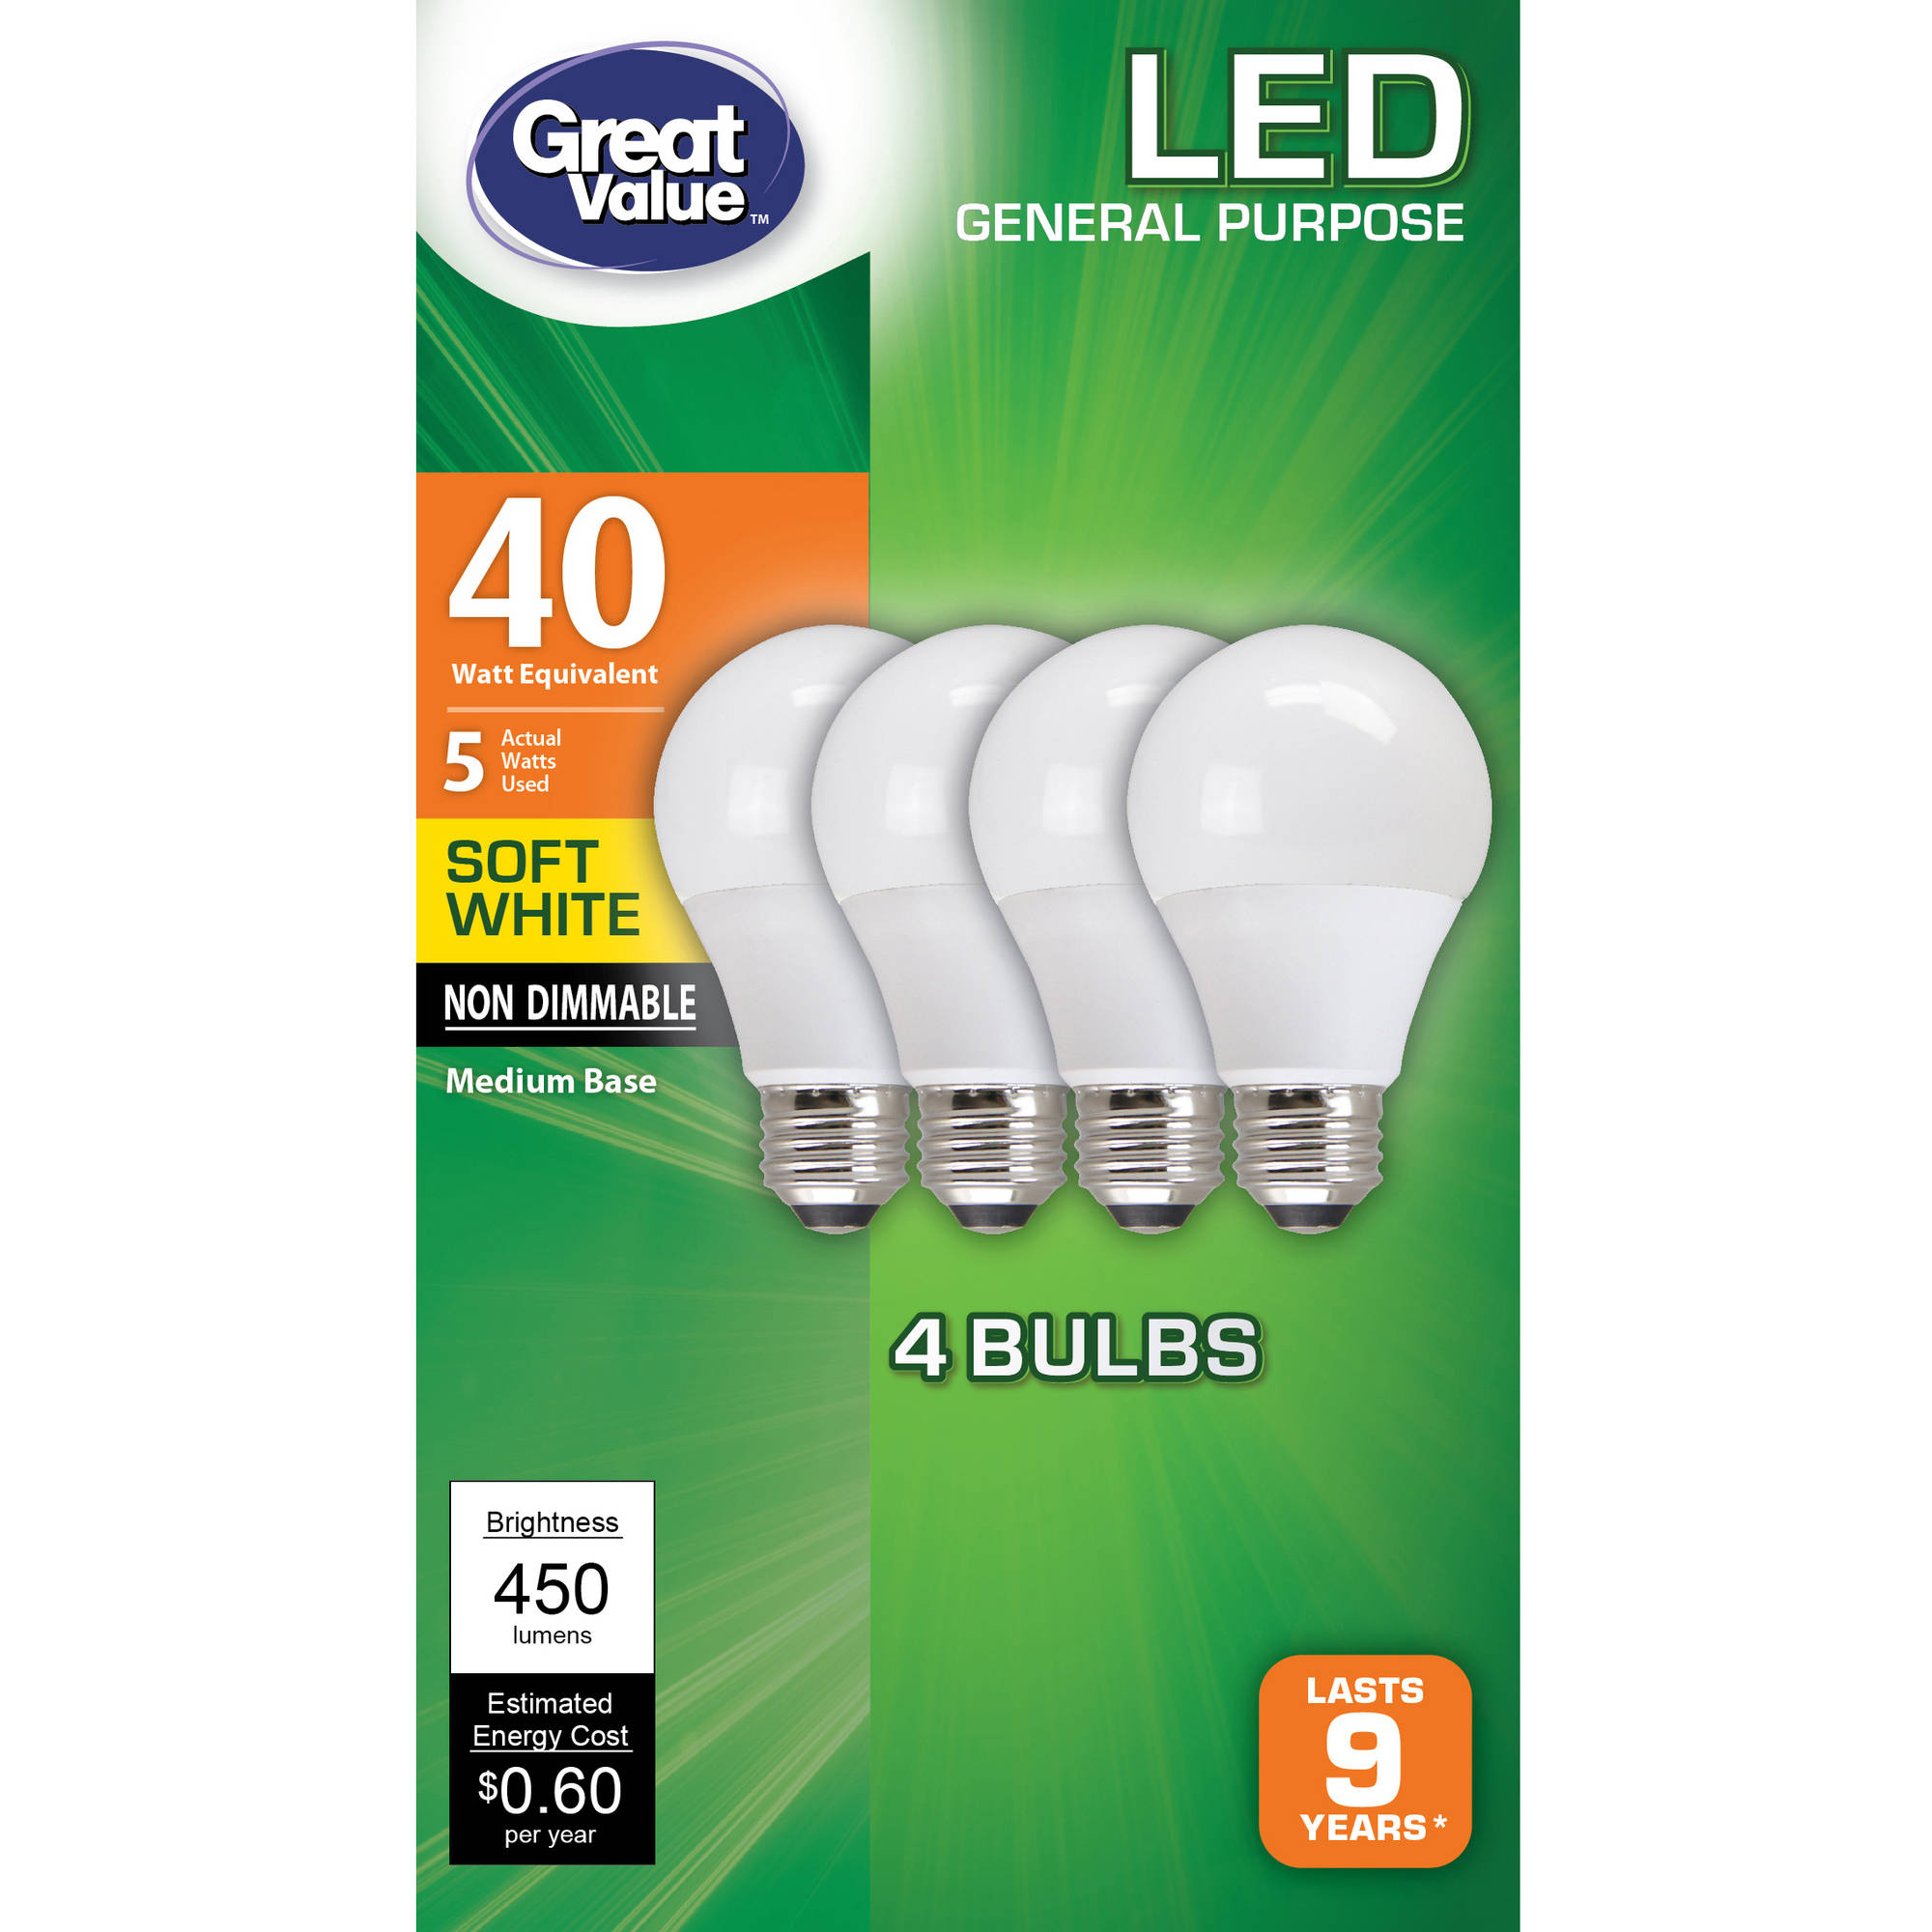 Great Value LED Ligh Bulbs 5W, 40W Equivalent, Soft White, 4-Pack